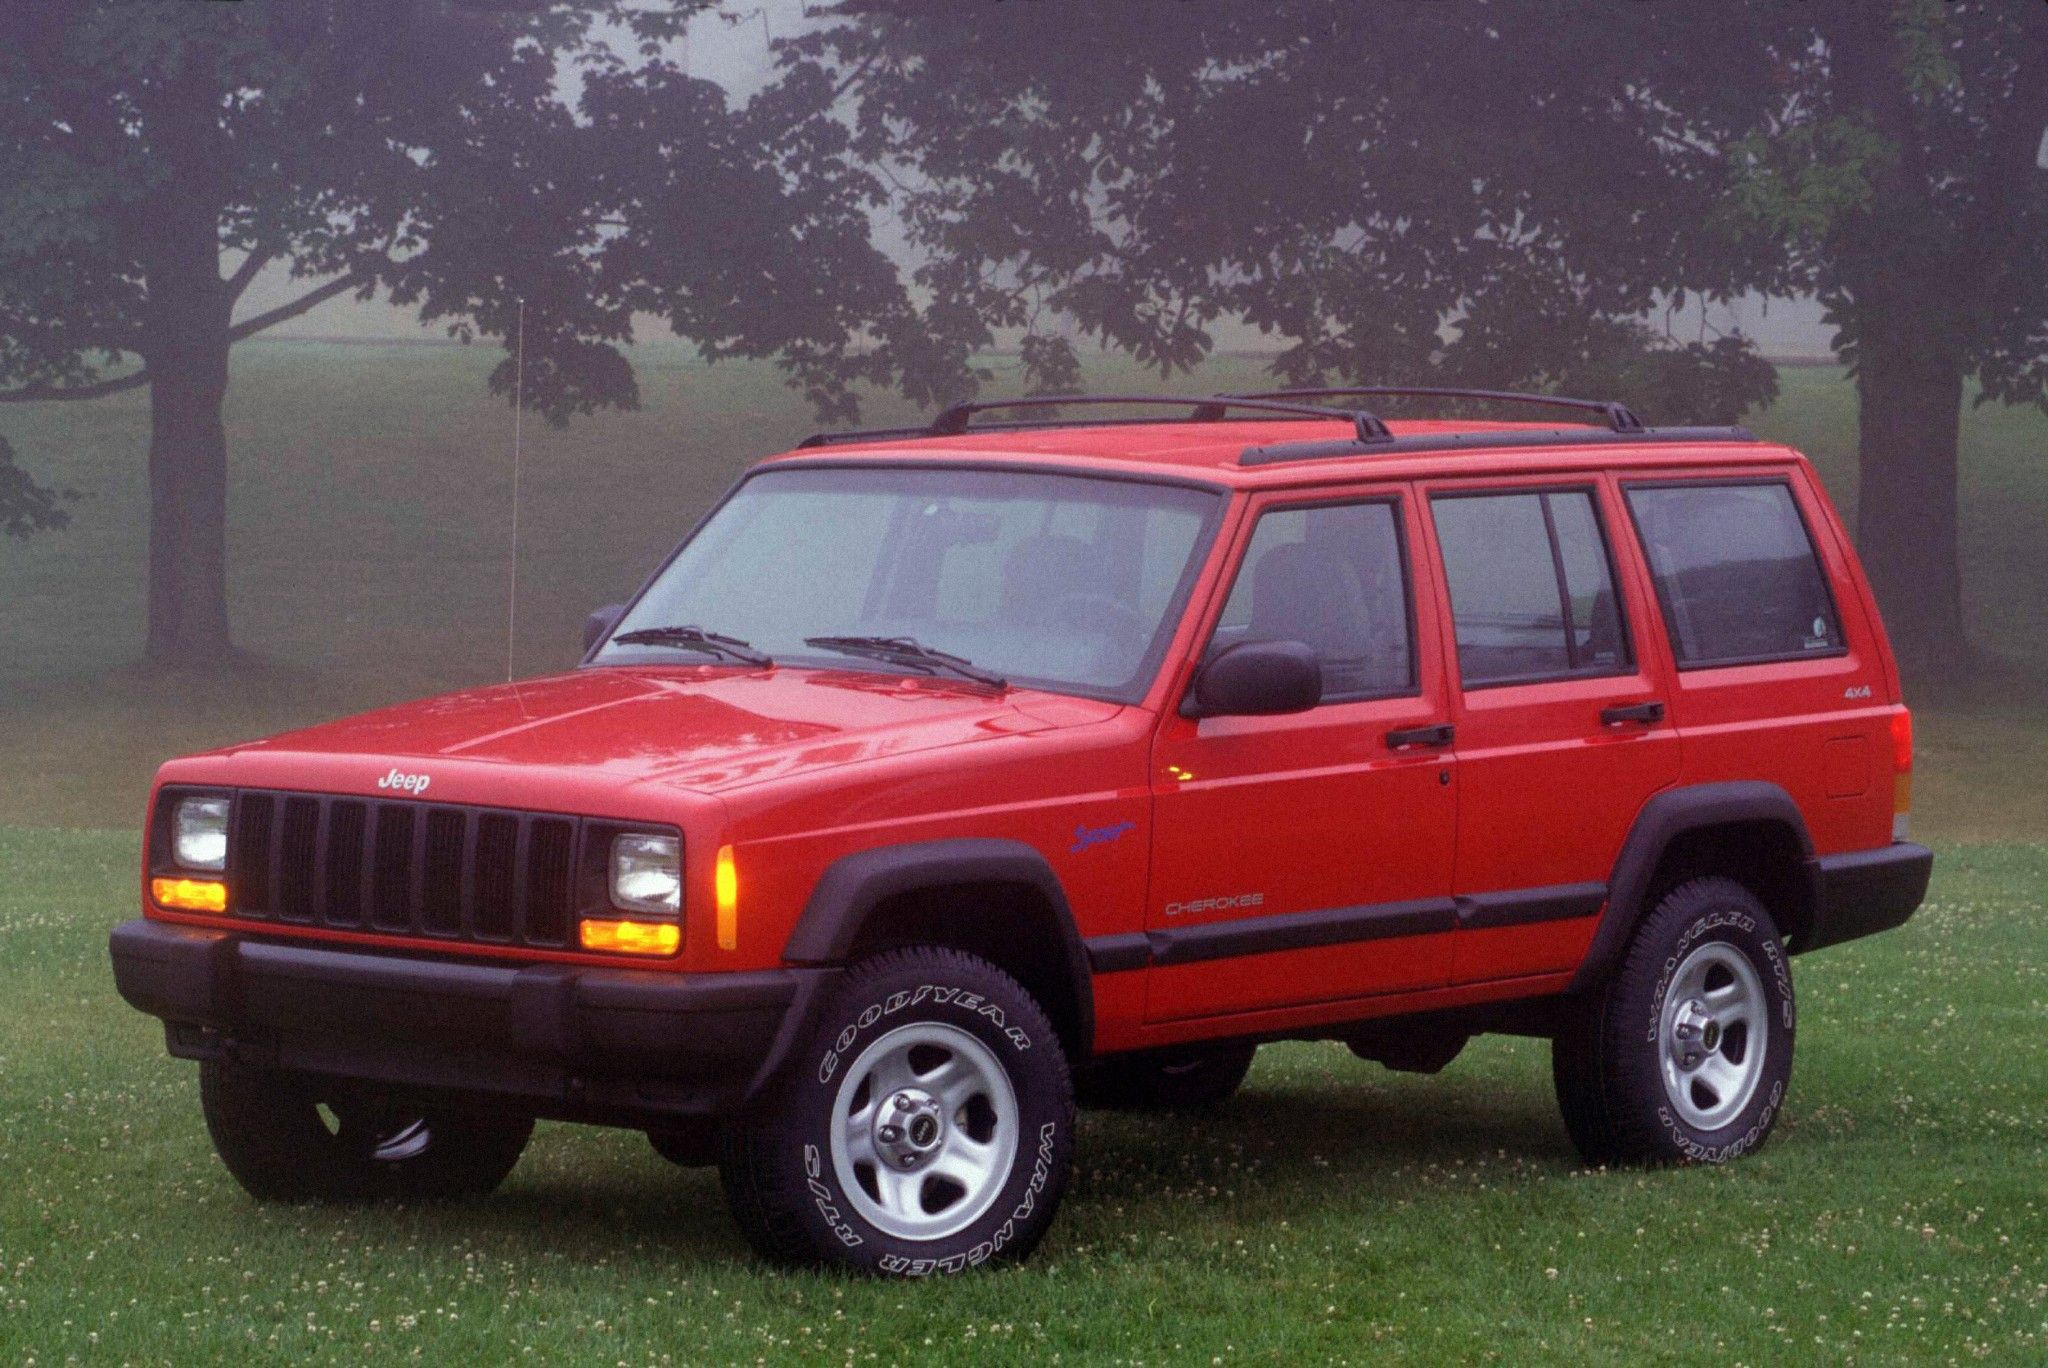 Pin by elle price on jeep cherokee in 2020 jeep cherokee